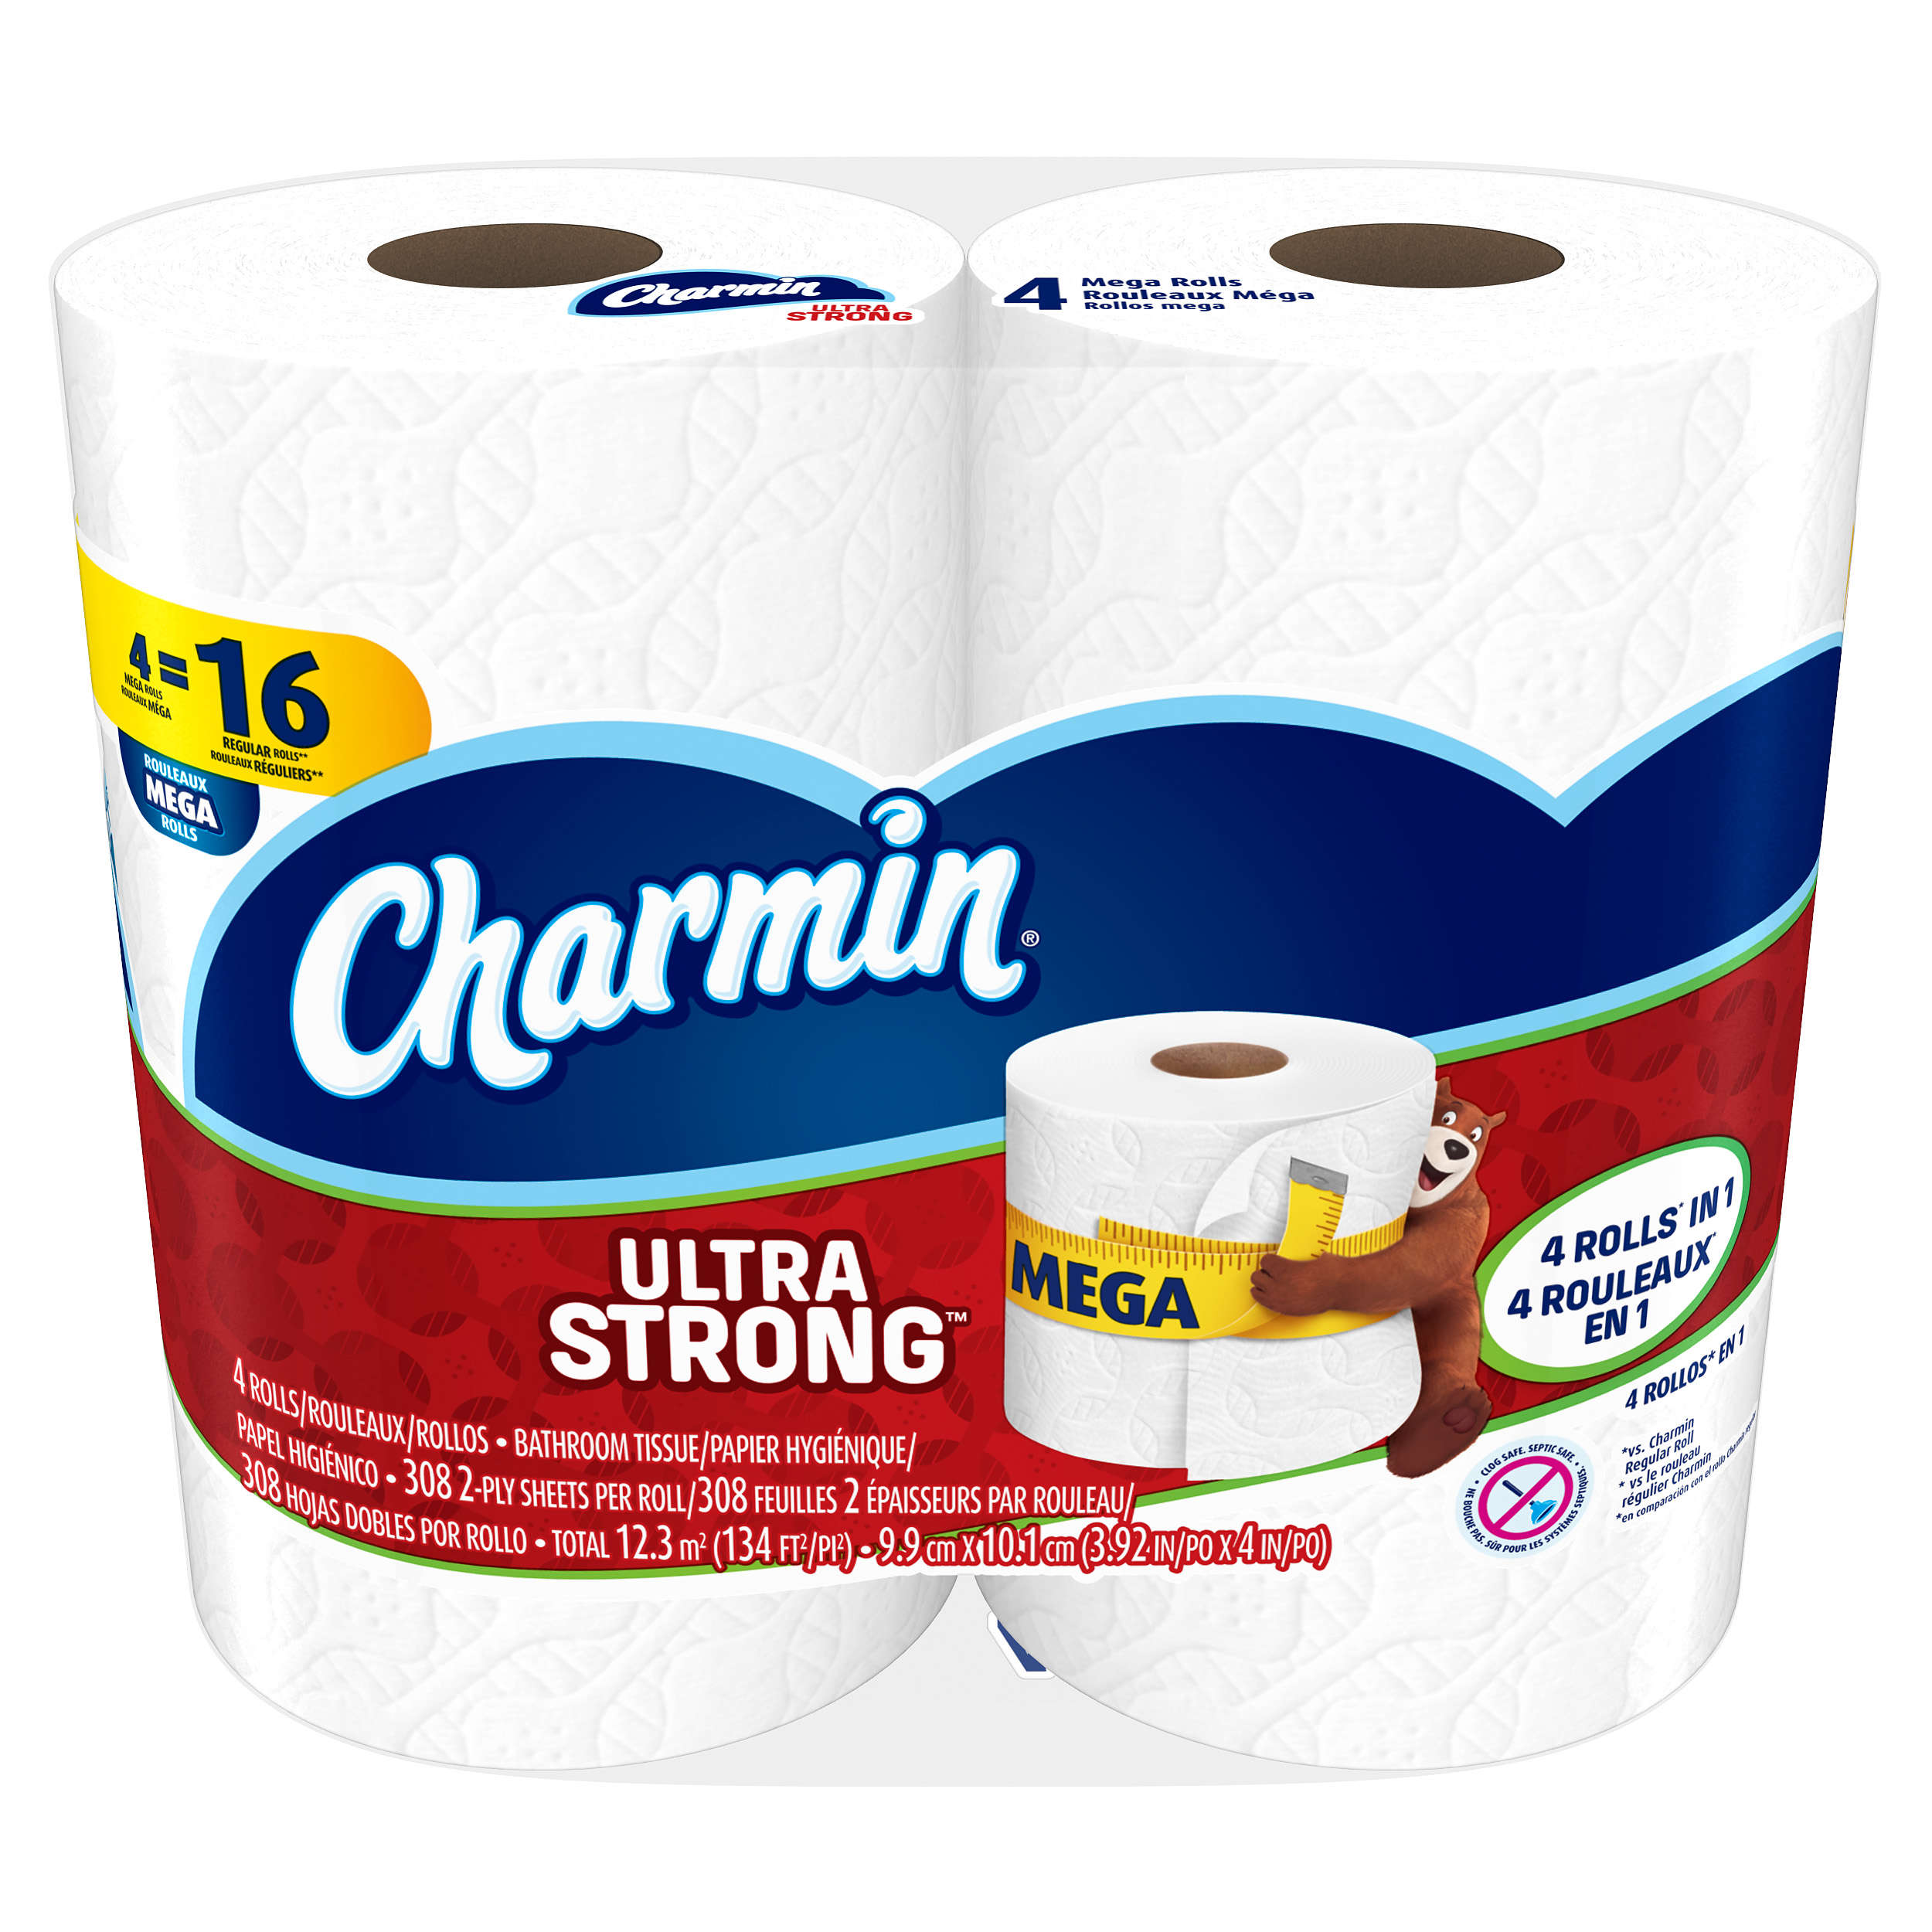 Charmin Toilet Paper, Ultra Strong, 4 Mega Rolls by Procter & Gamble